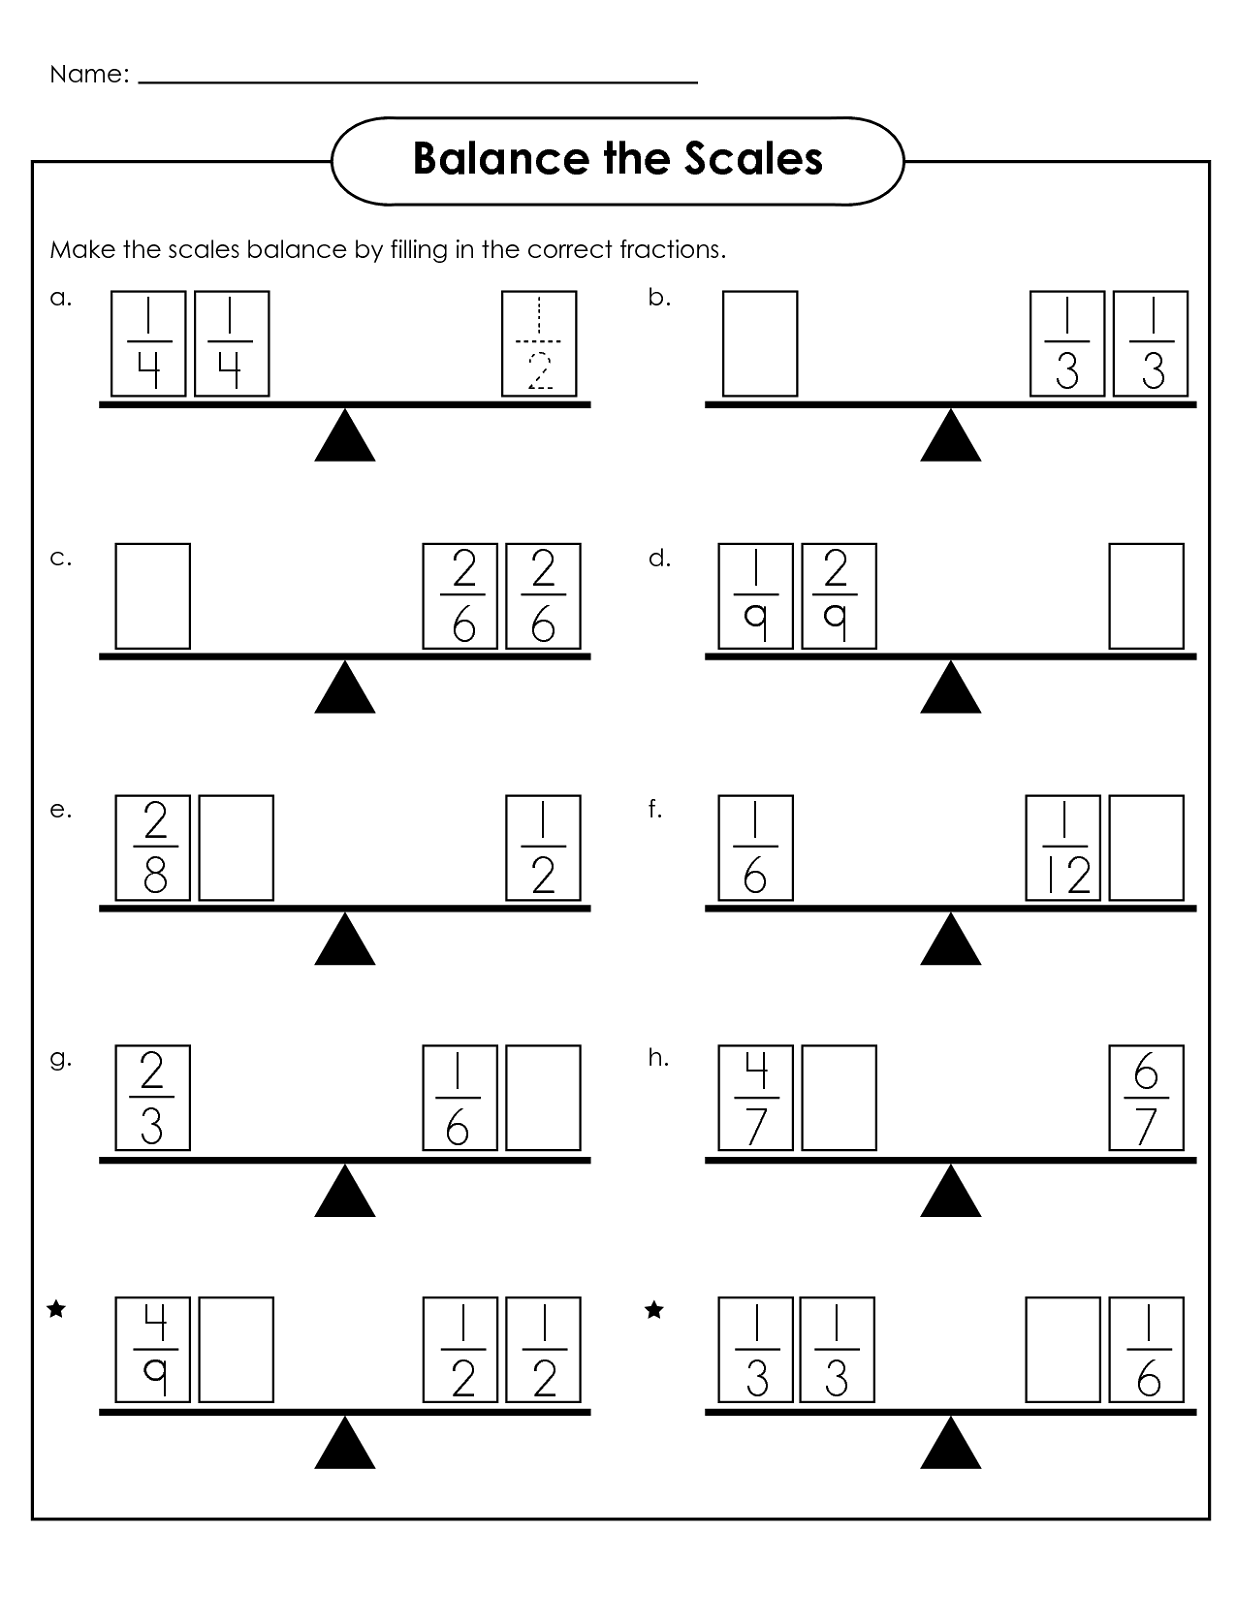 Balance scale worksheets for children activity shelter math balance scale worksheets for children activity shelter robcynllc Images